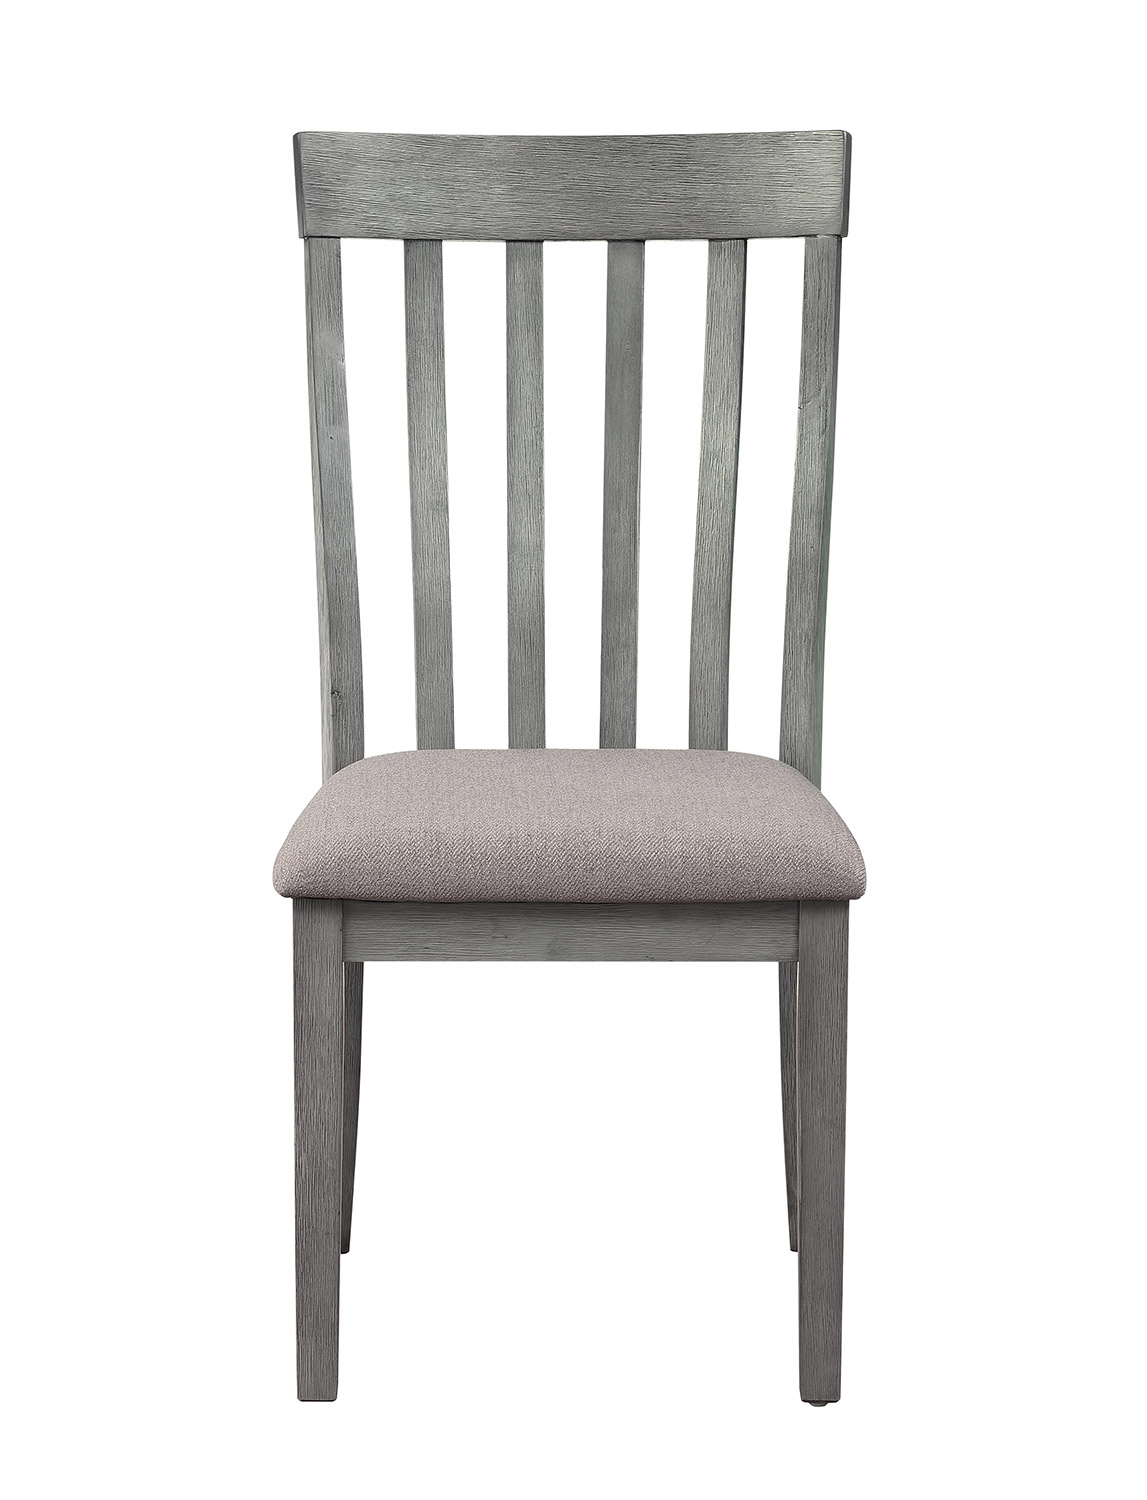 Homelegance Armhurst Side Chair - Gray